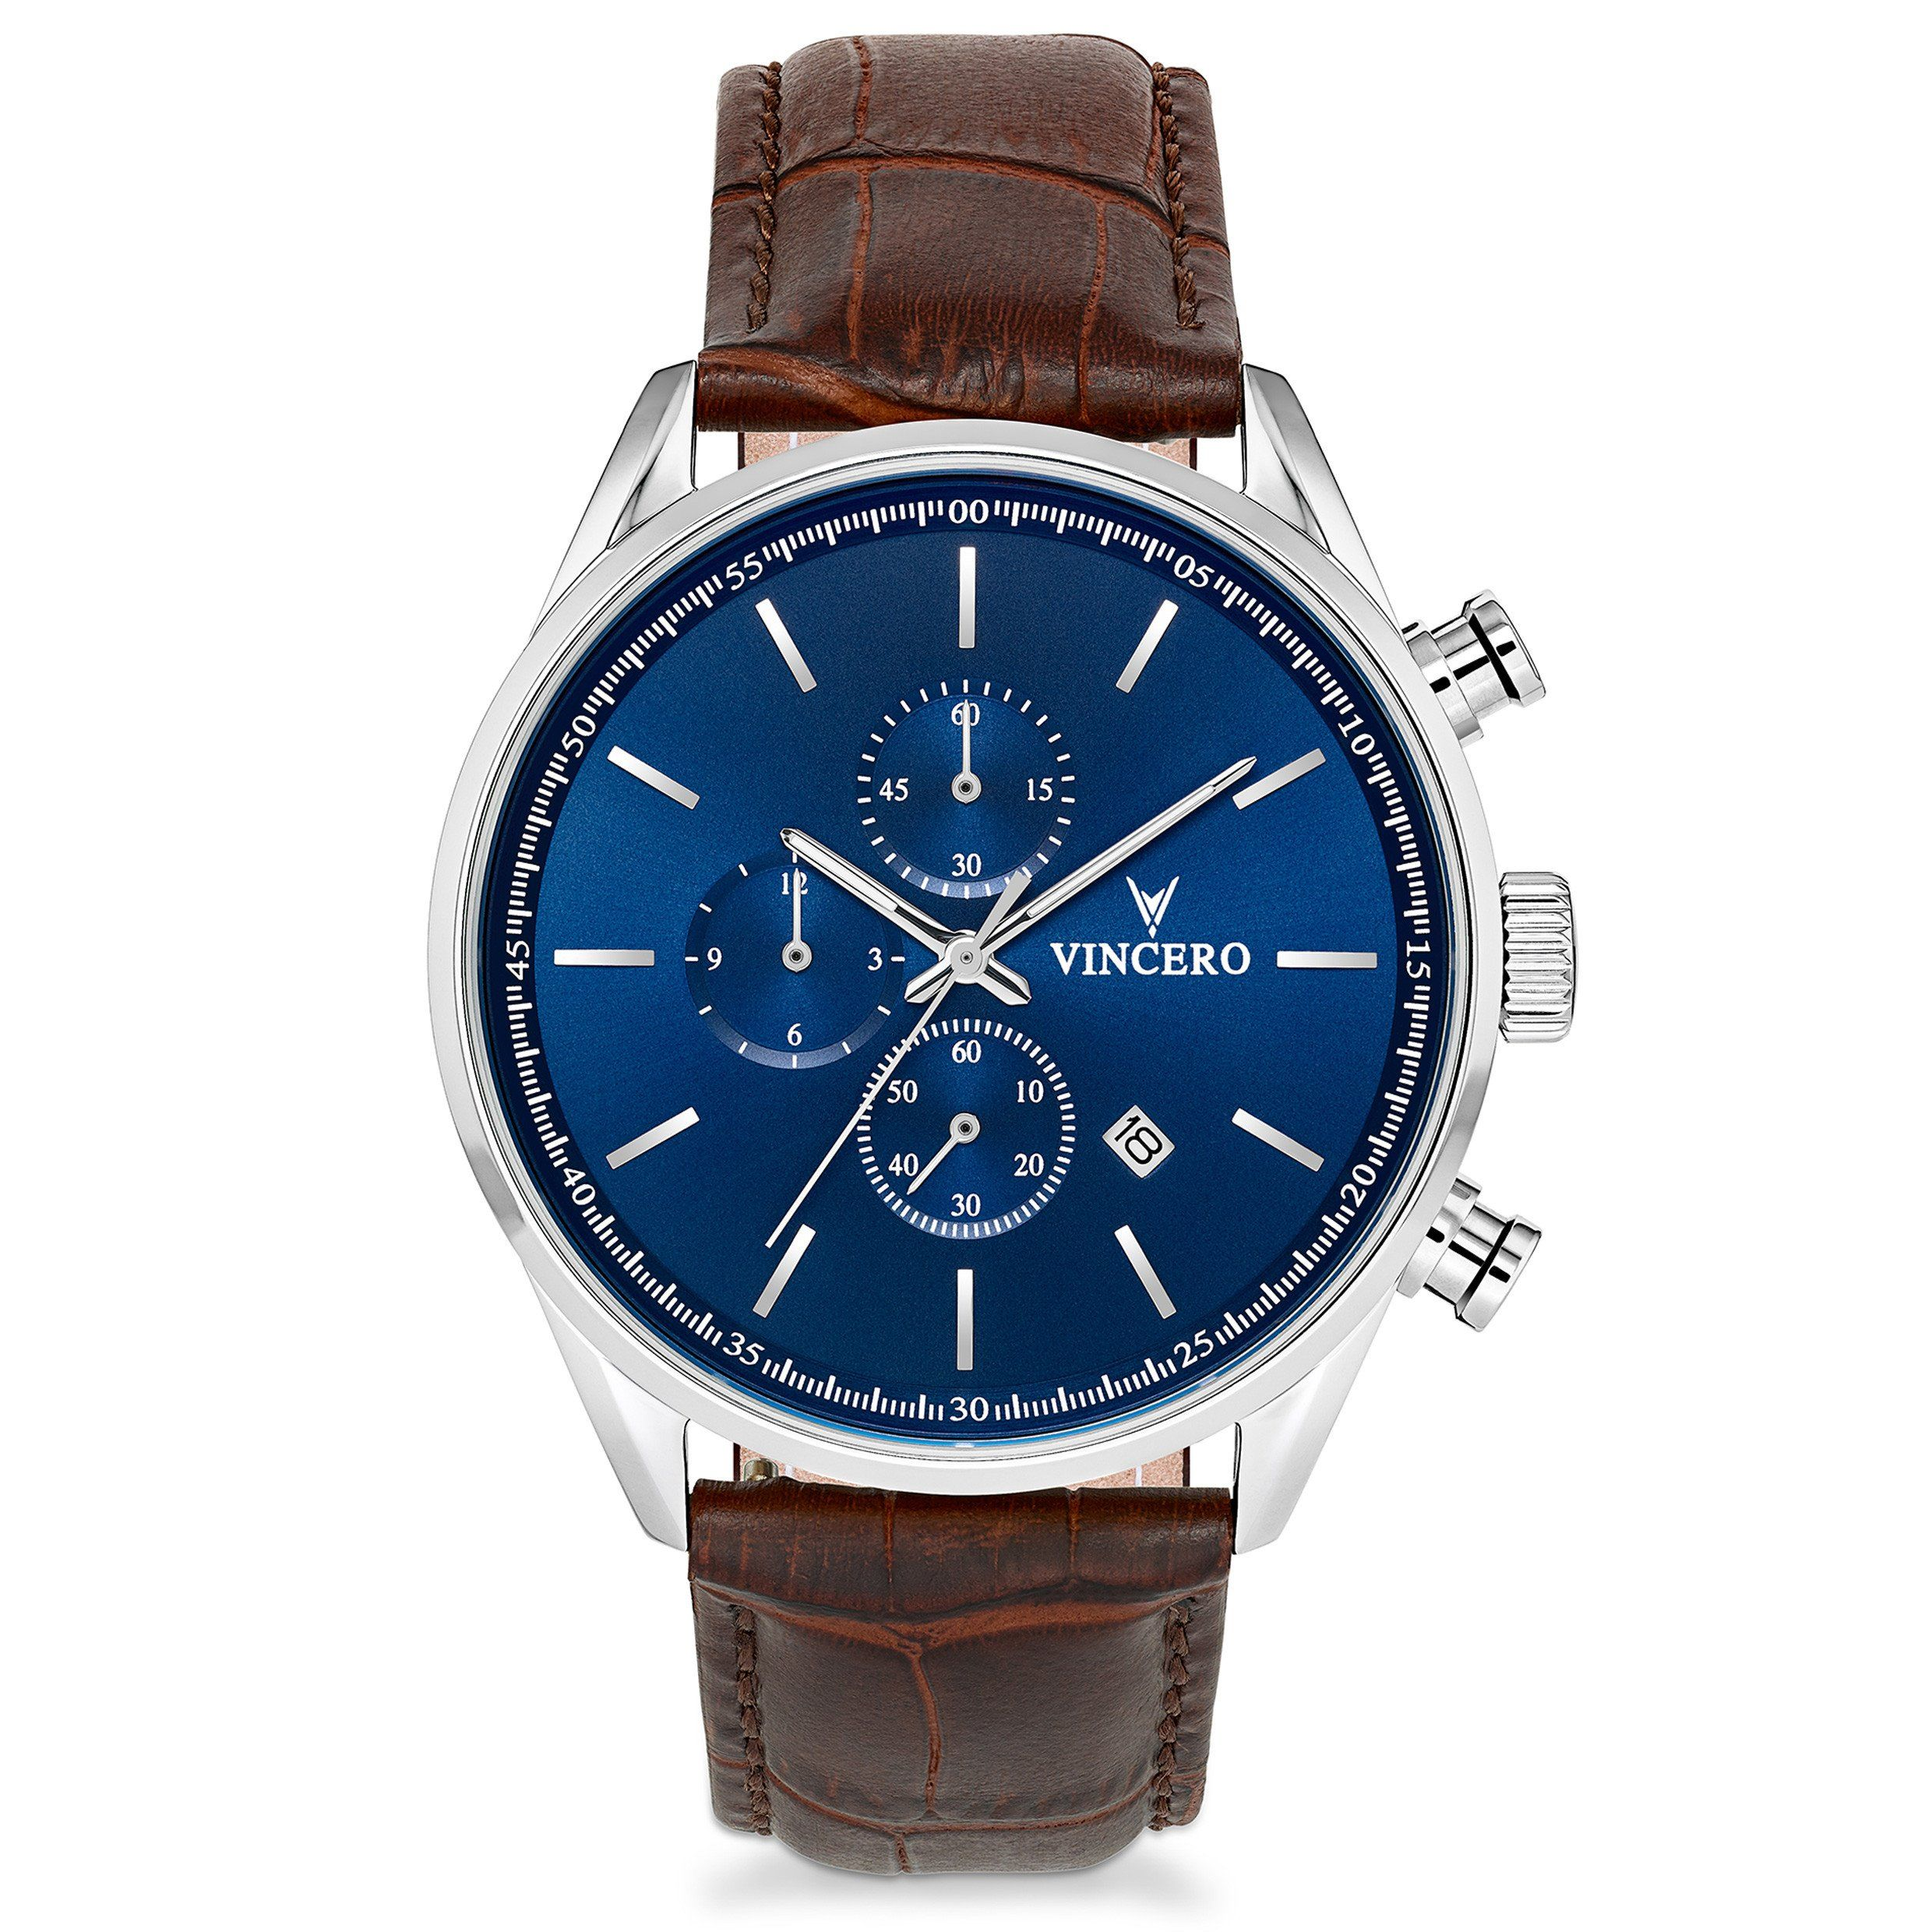 6dca0bc70ff9 All Watches – Vincero Watches